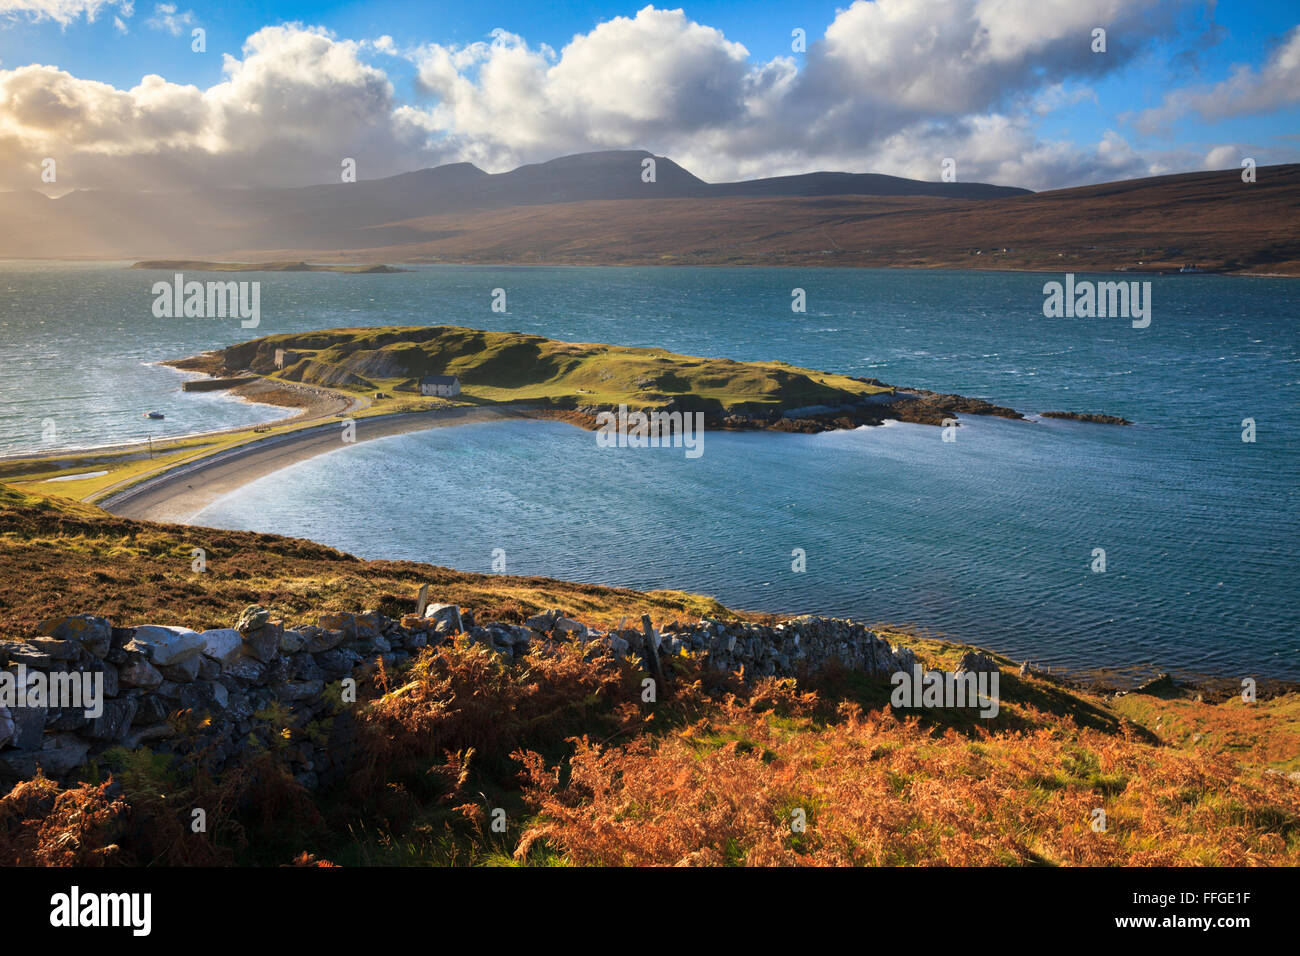 Ard Neackie on Loch Eriboll in the North West Highlands of Scotland, captured on a stormy afternoon in late October. - Stock Image